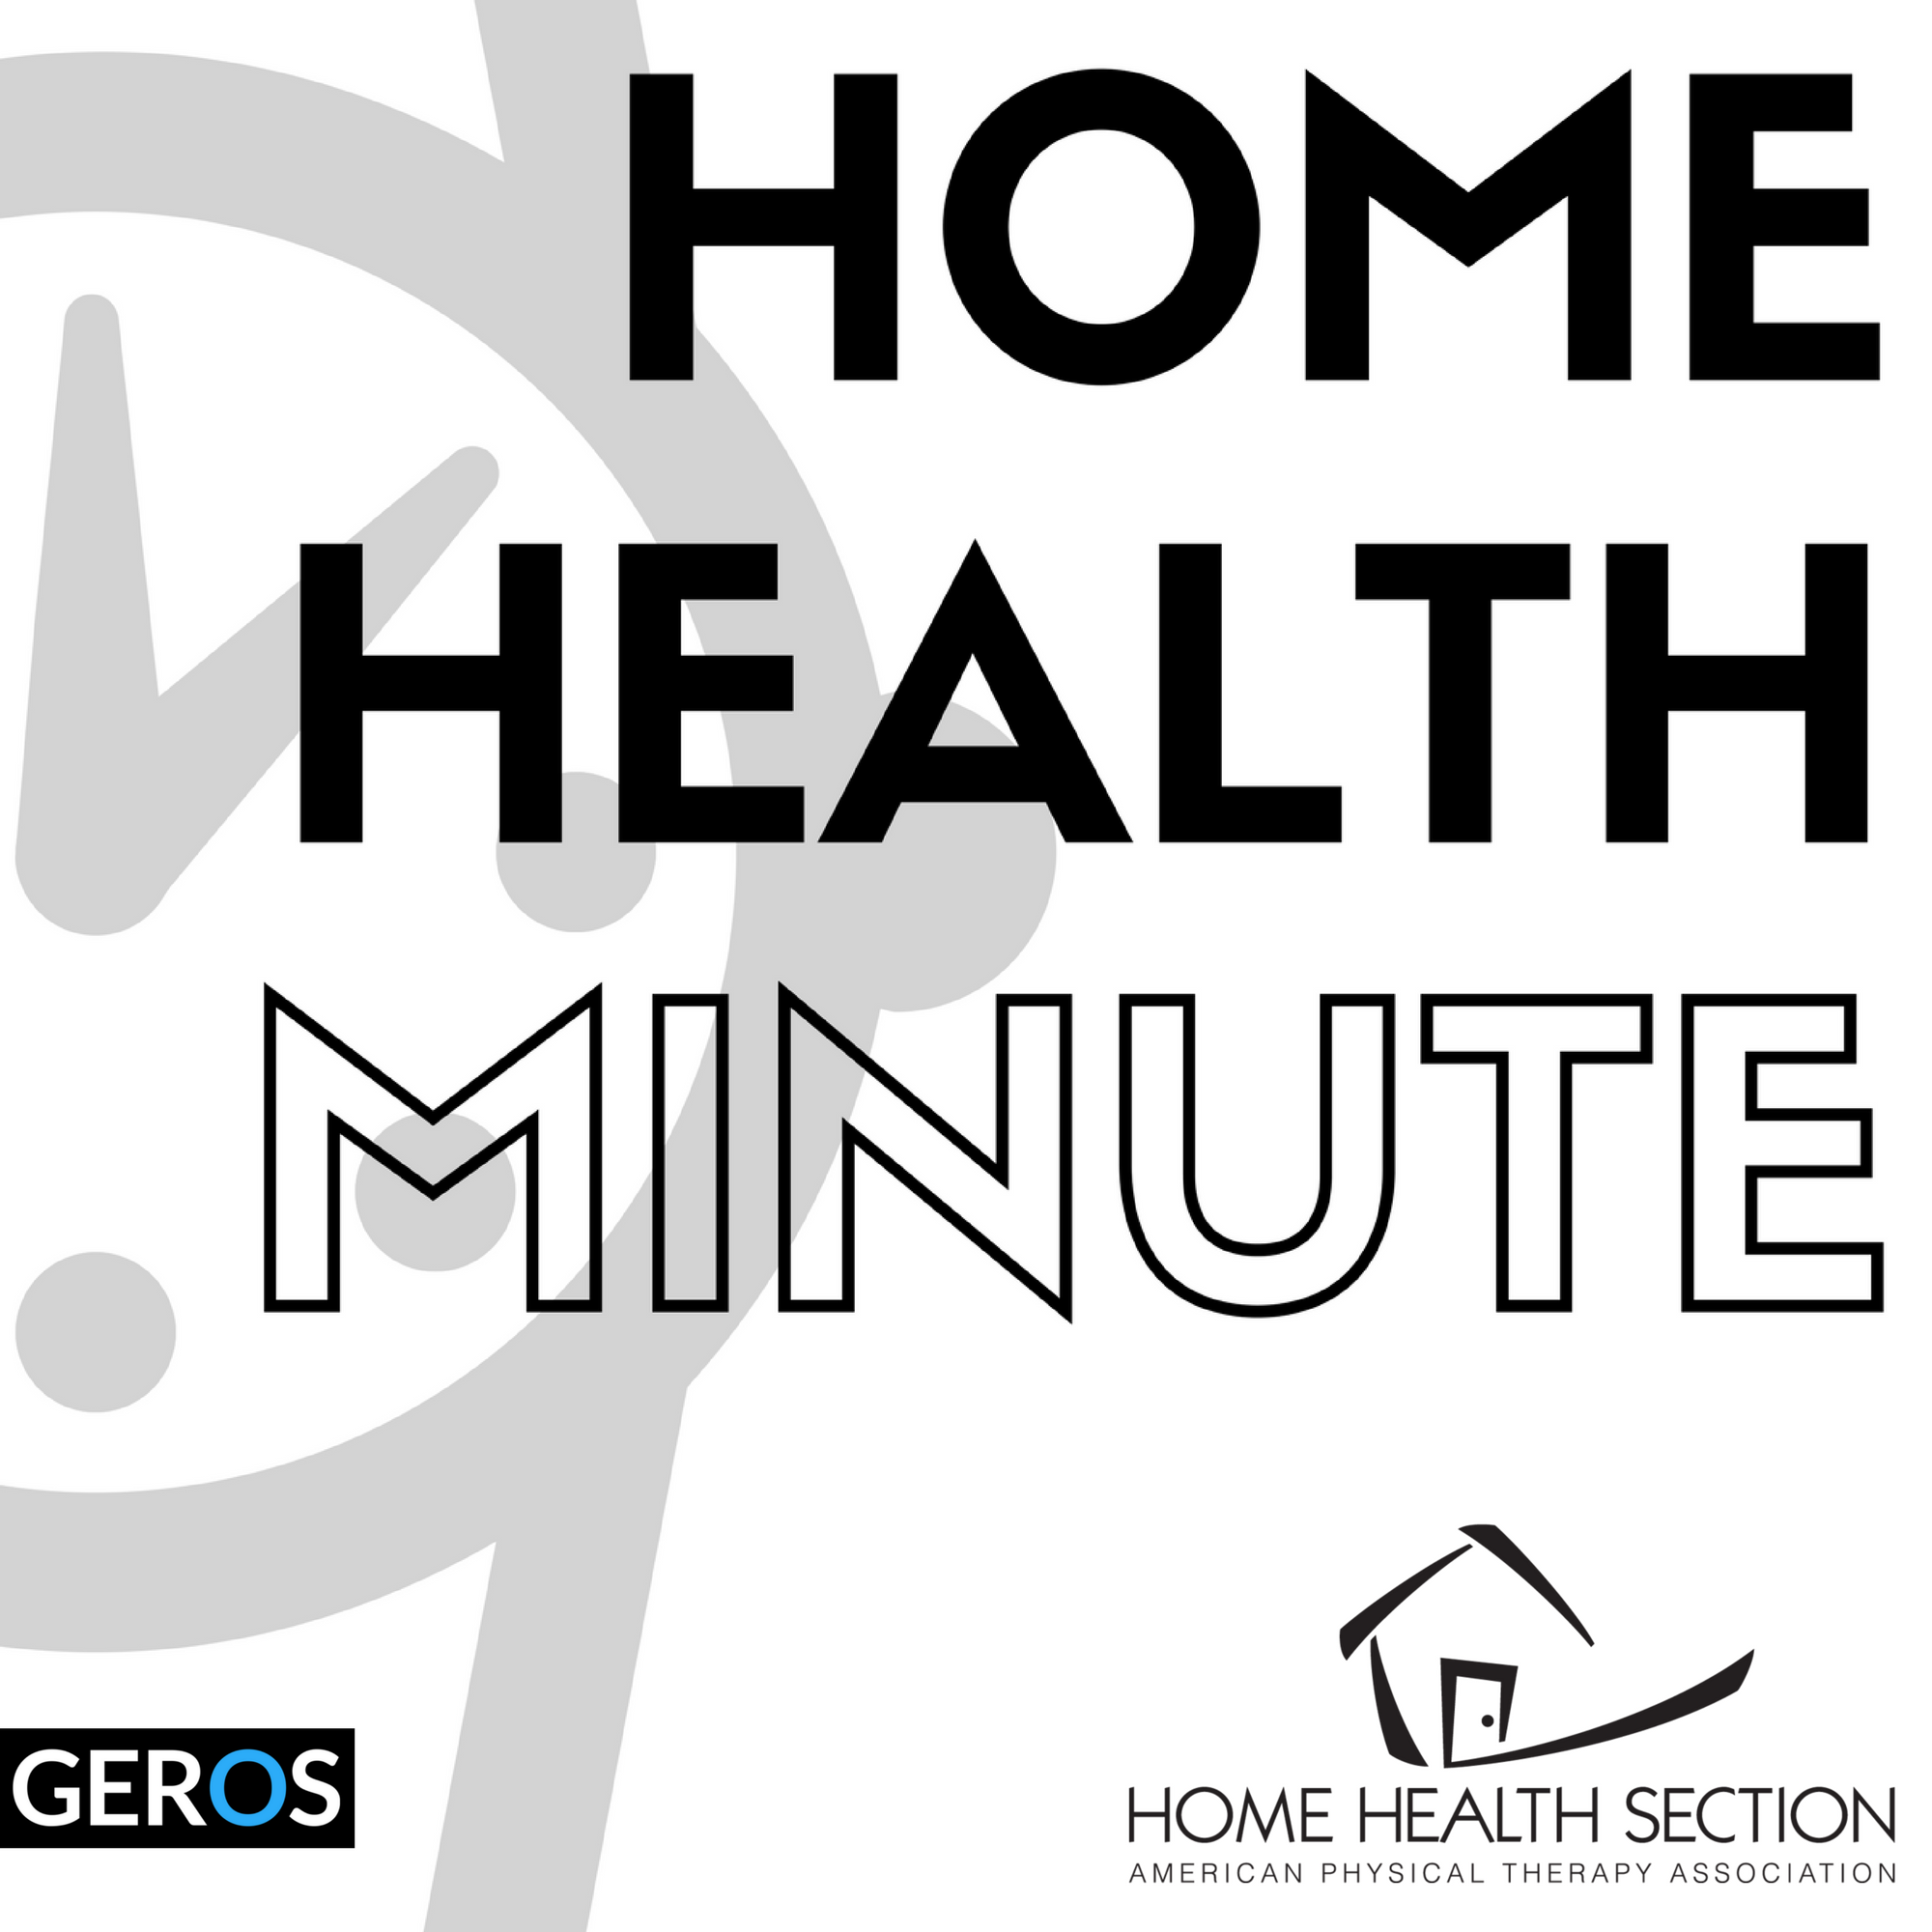 Sleep Management in the Home